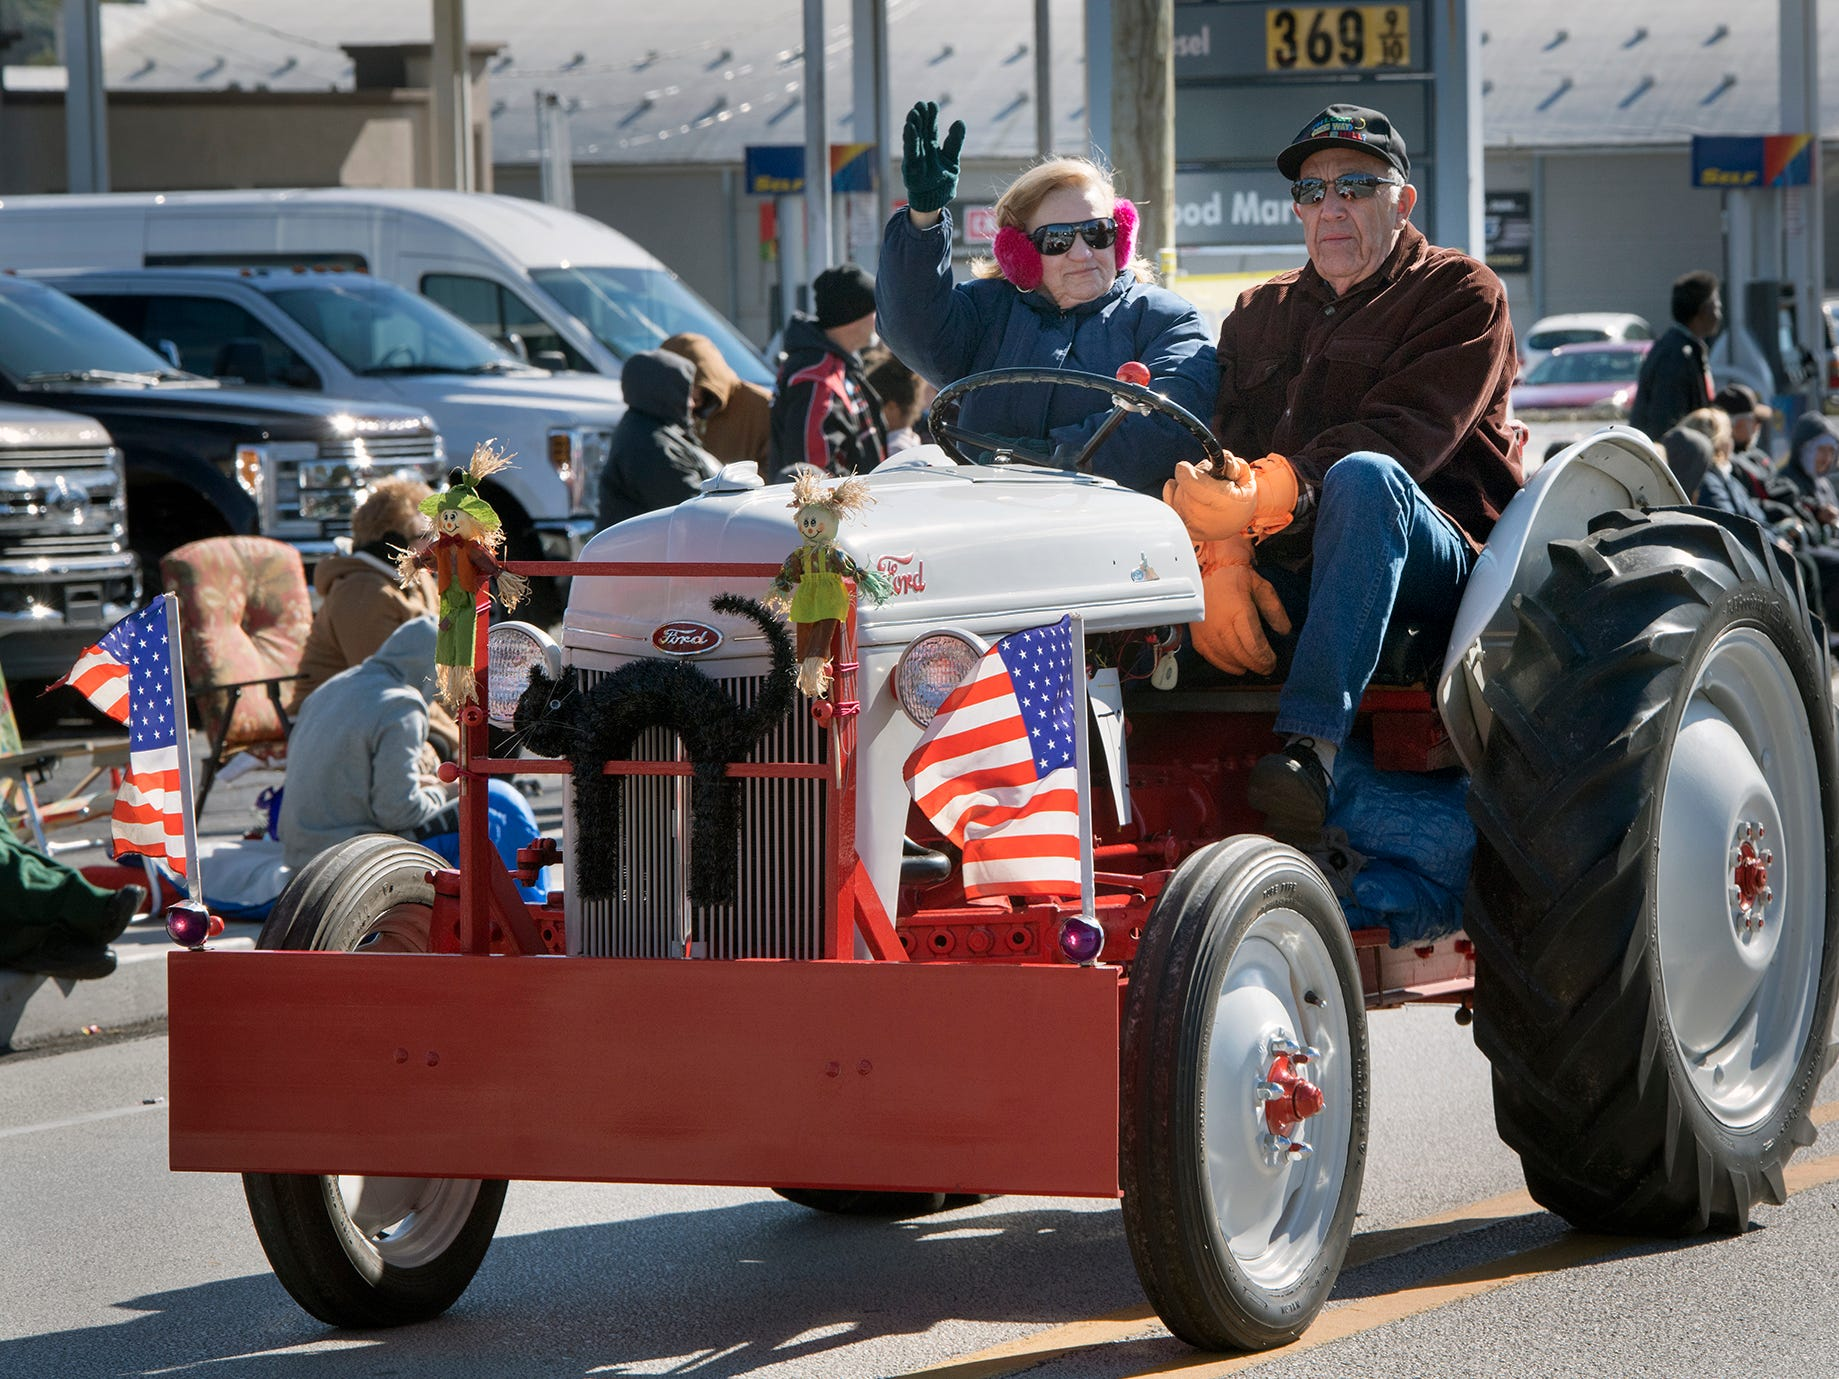 An old Ford tractor promotes Olde Tyme Days during the 53rd Annual Manchester/Mt. Wolf Halloween Parade.